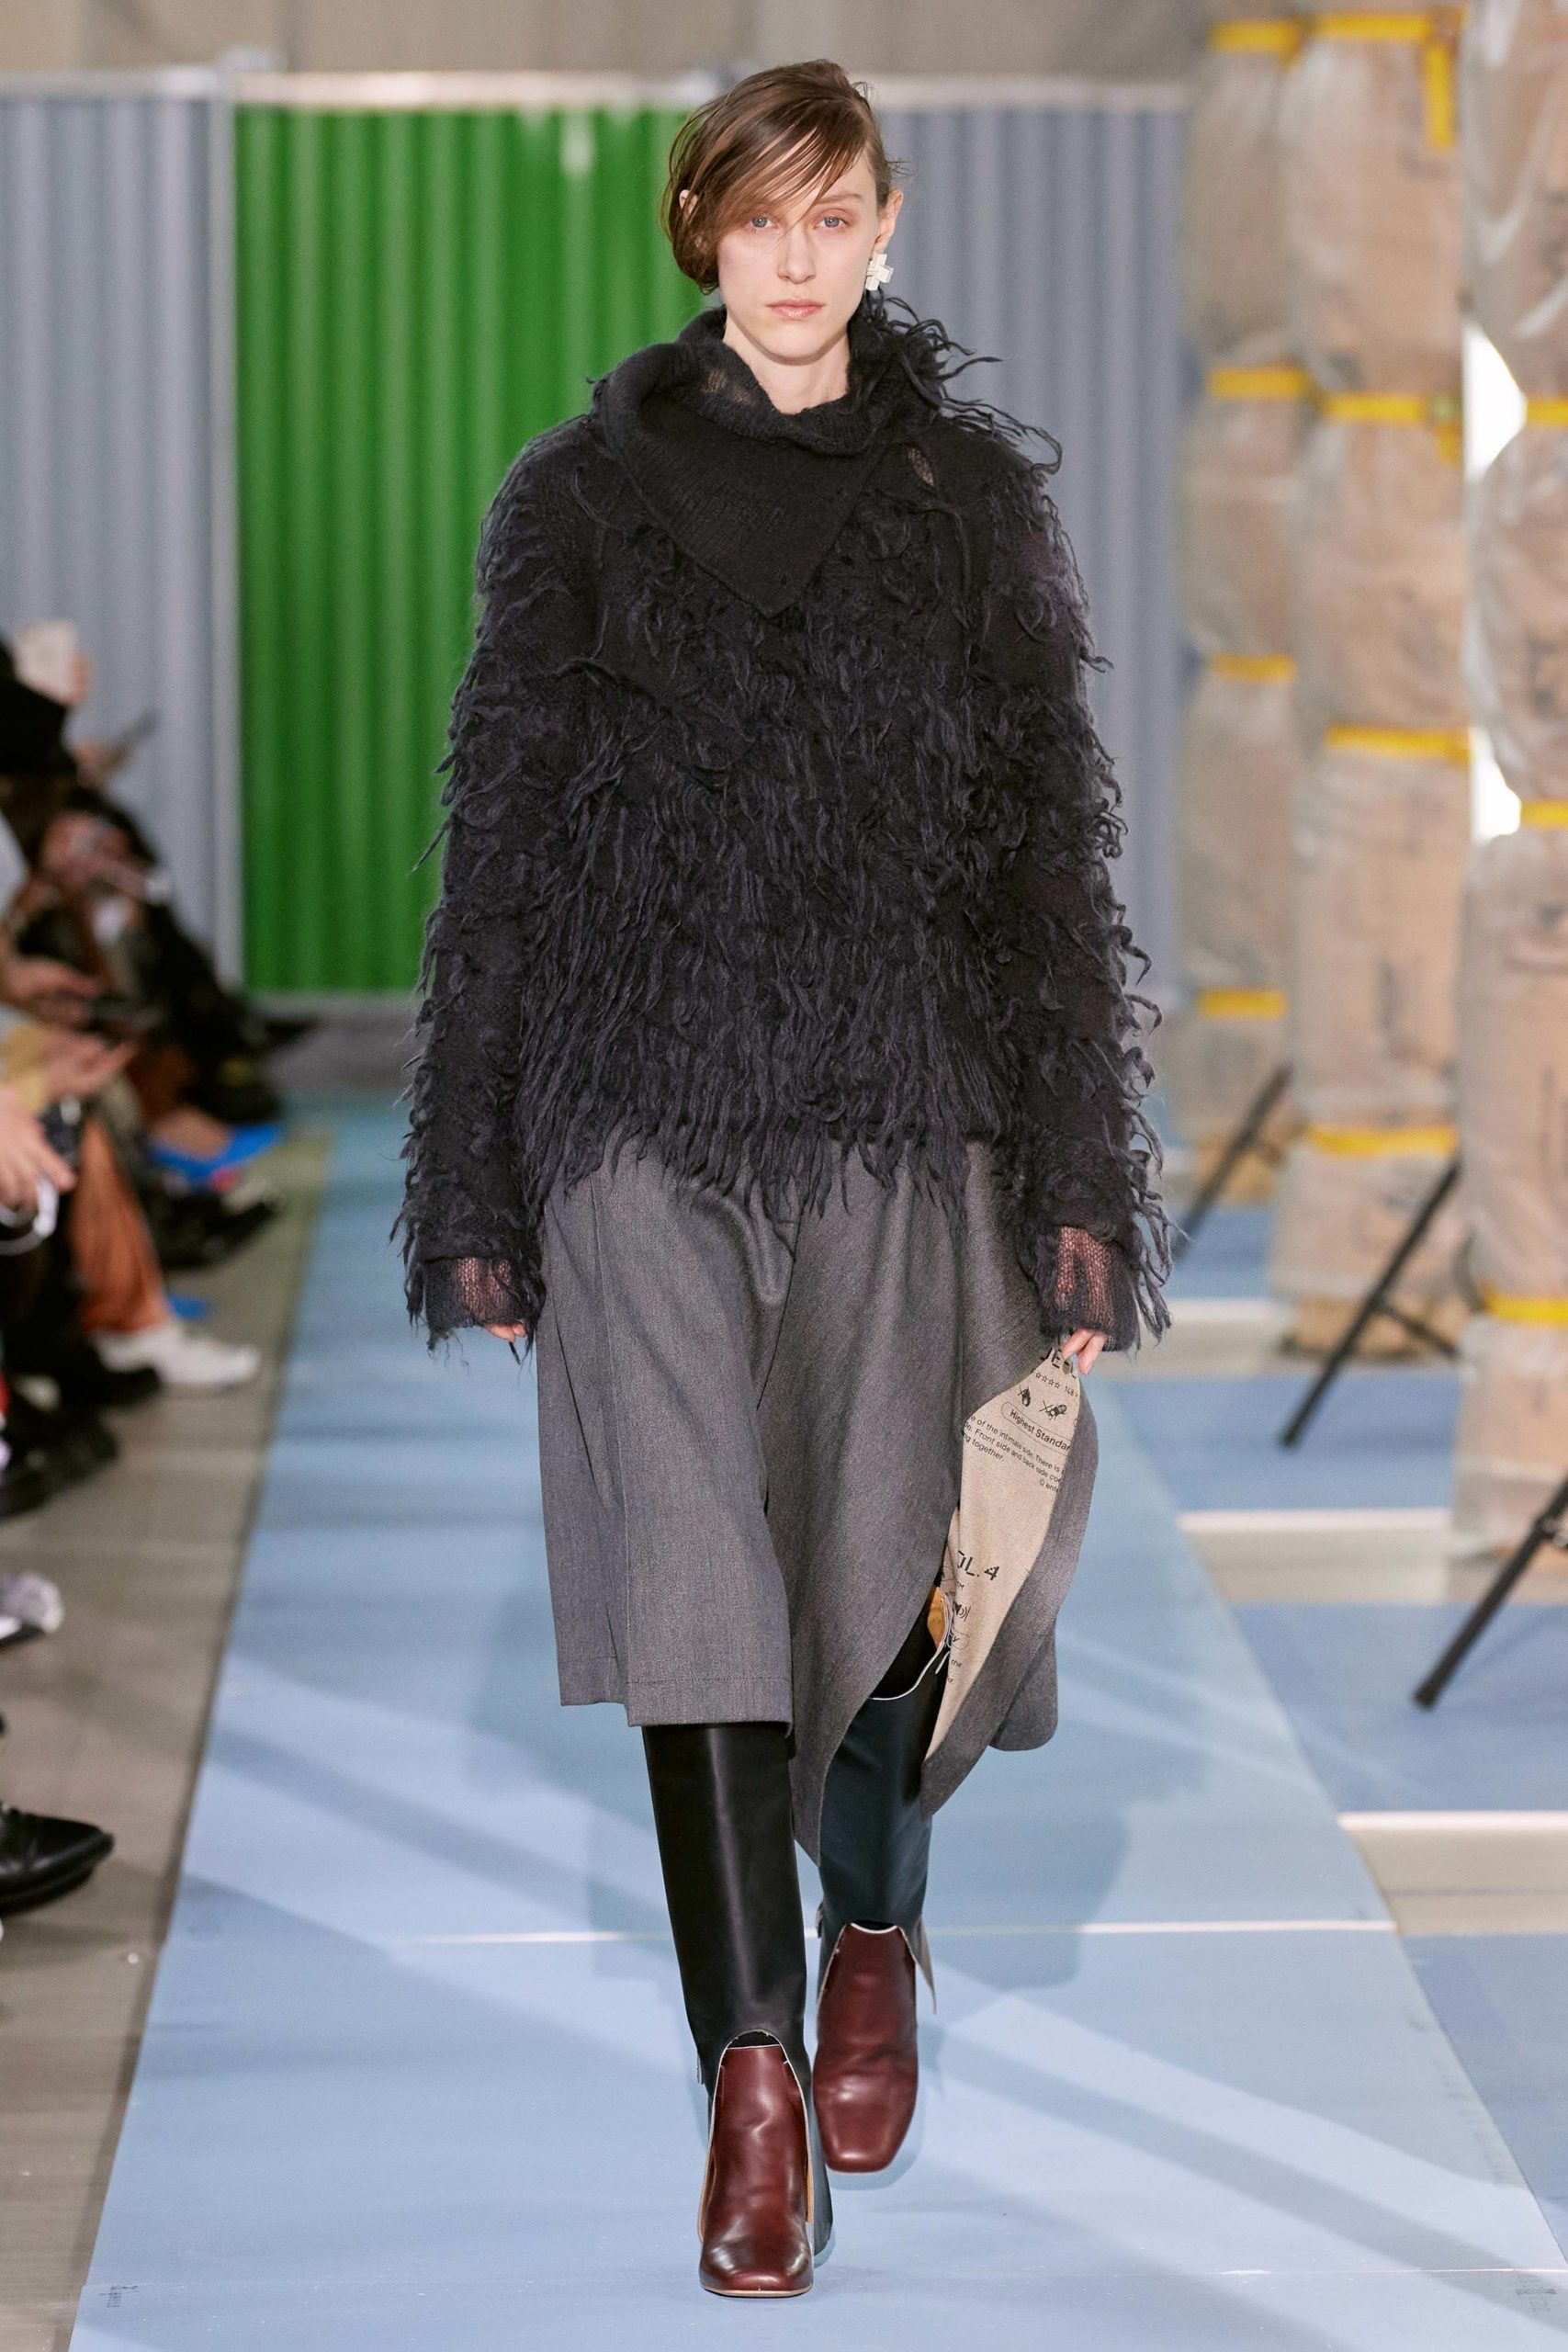 Beautiful people Fall Winter 2020 trends runway coverage Ready To Wear Vogue shaggy 2